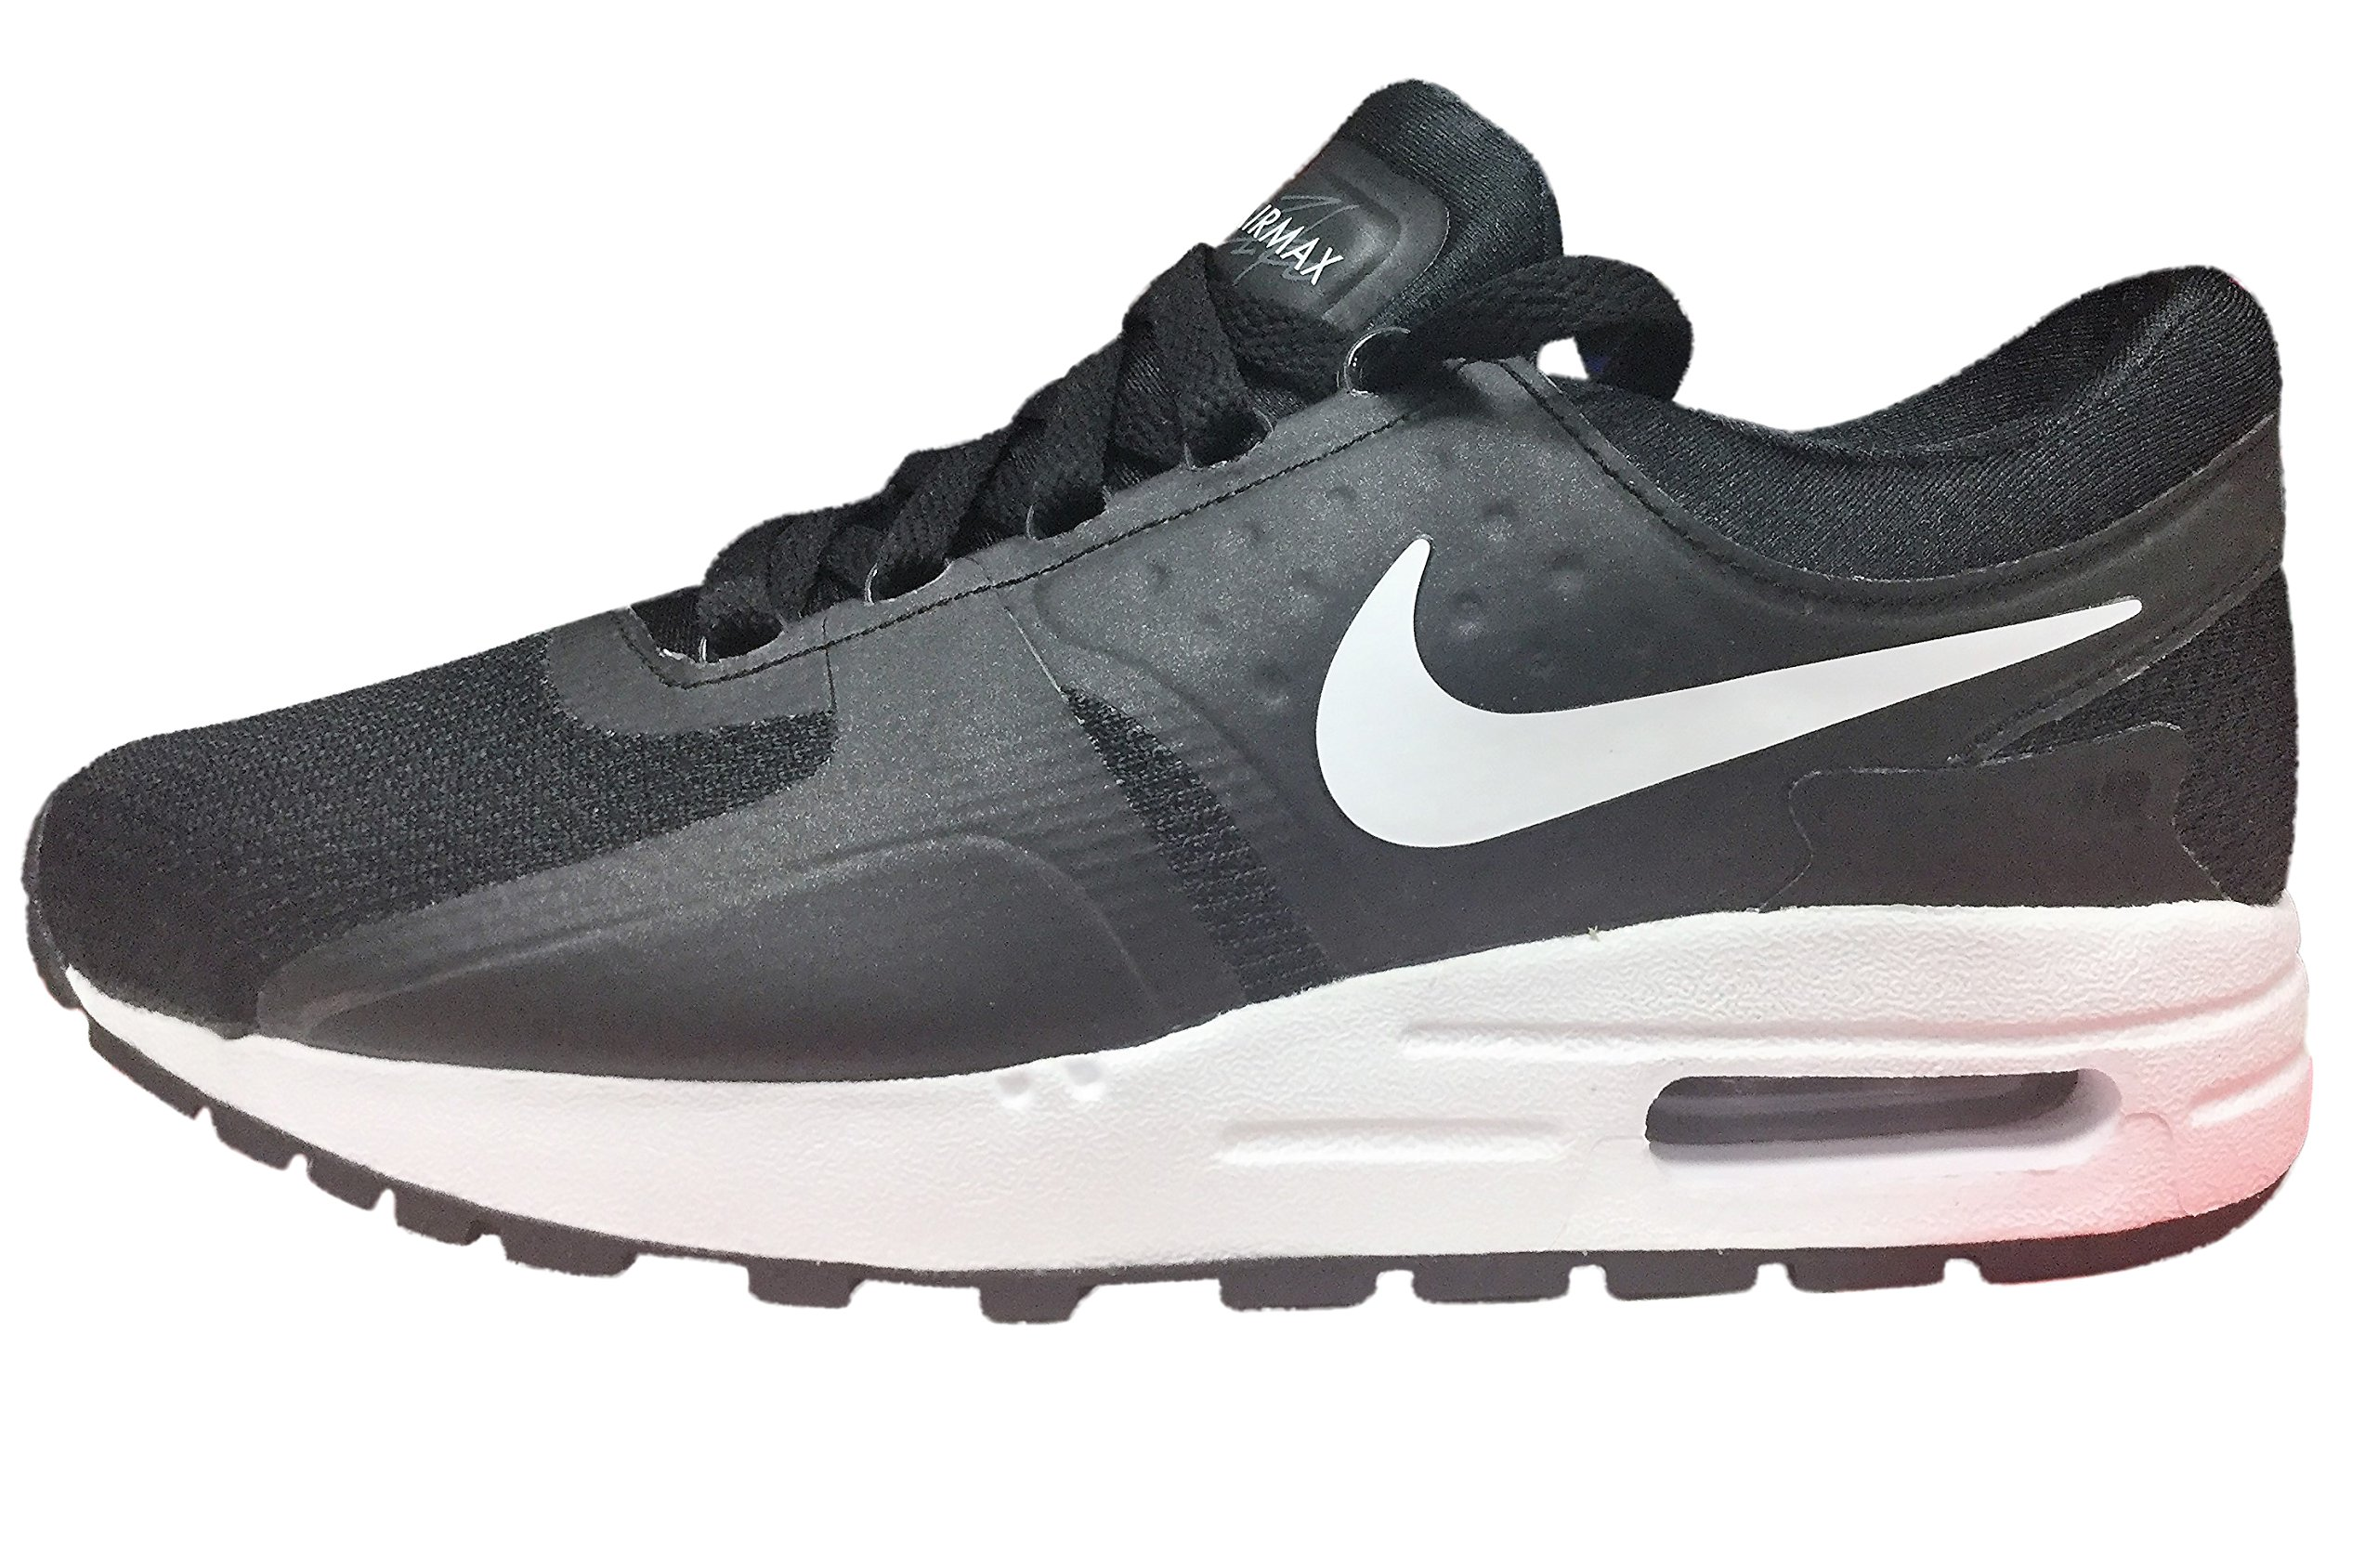 c23a082d64 Galleon - Nike Youth (GS) Air Max Zero Running Shoes Black/Dark Grey/White  881224-002 Size 5